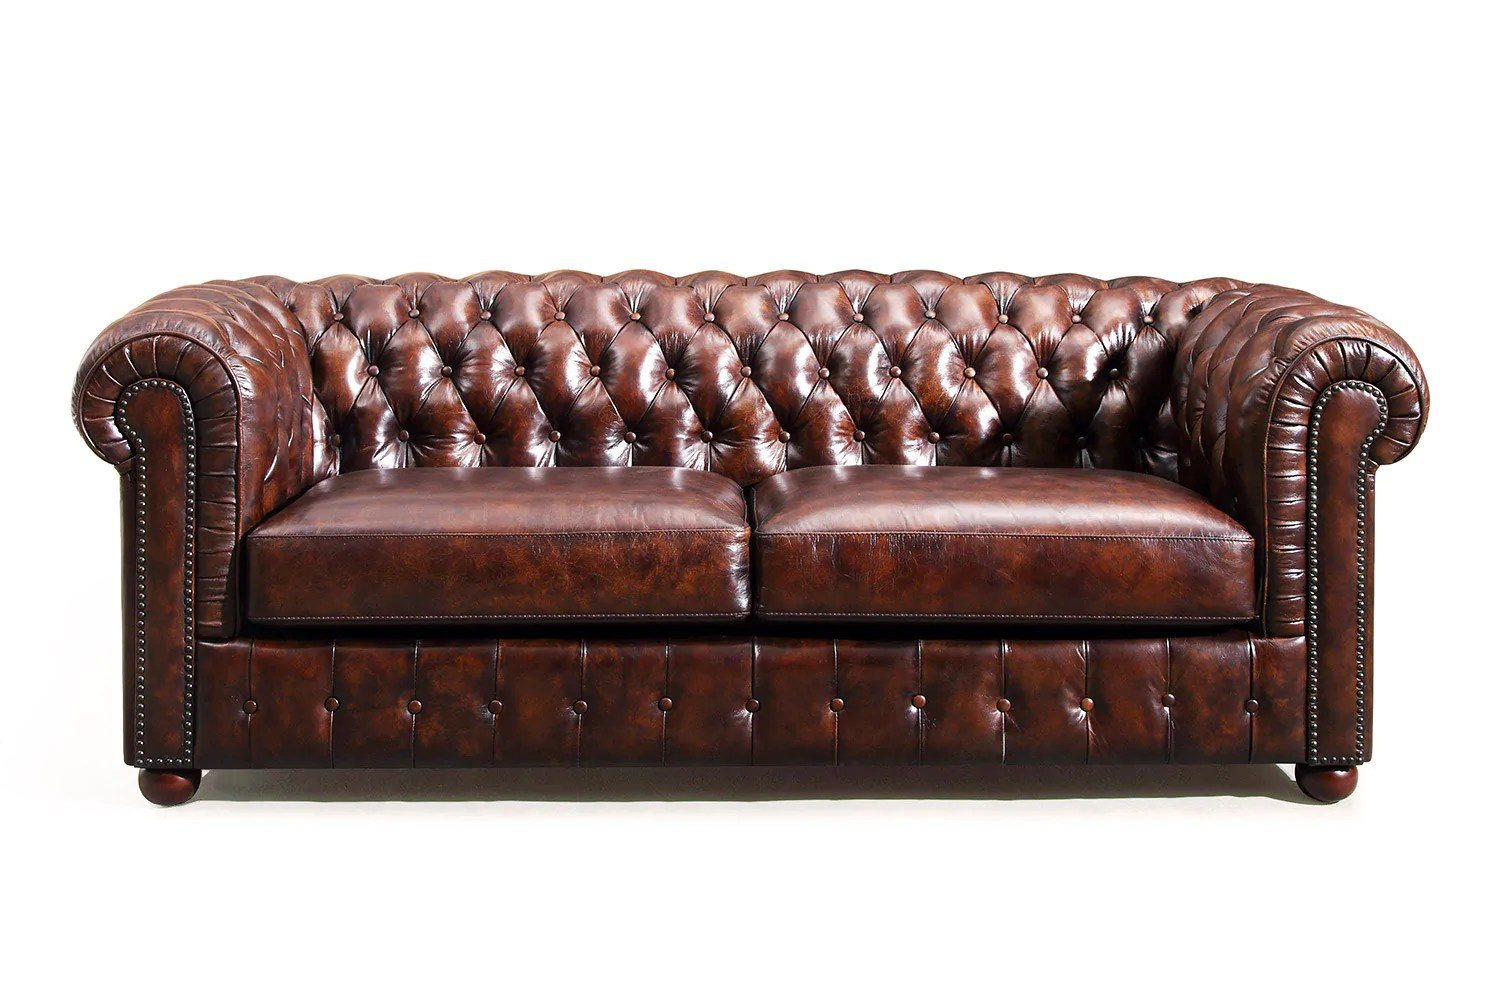 High Back Antique Sofa The Original Chesterfield Sofa Rose And Moore